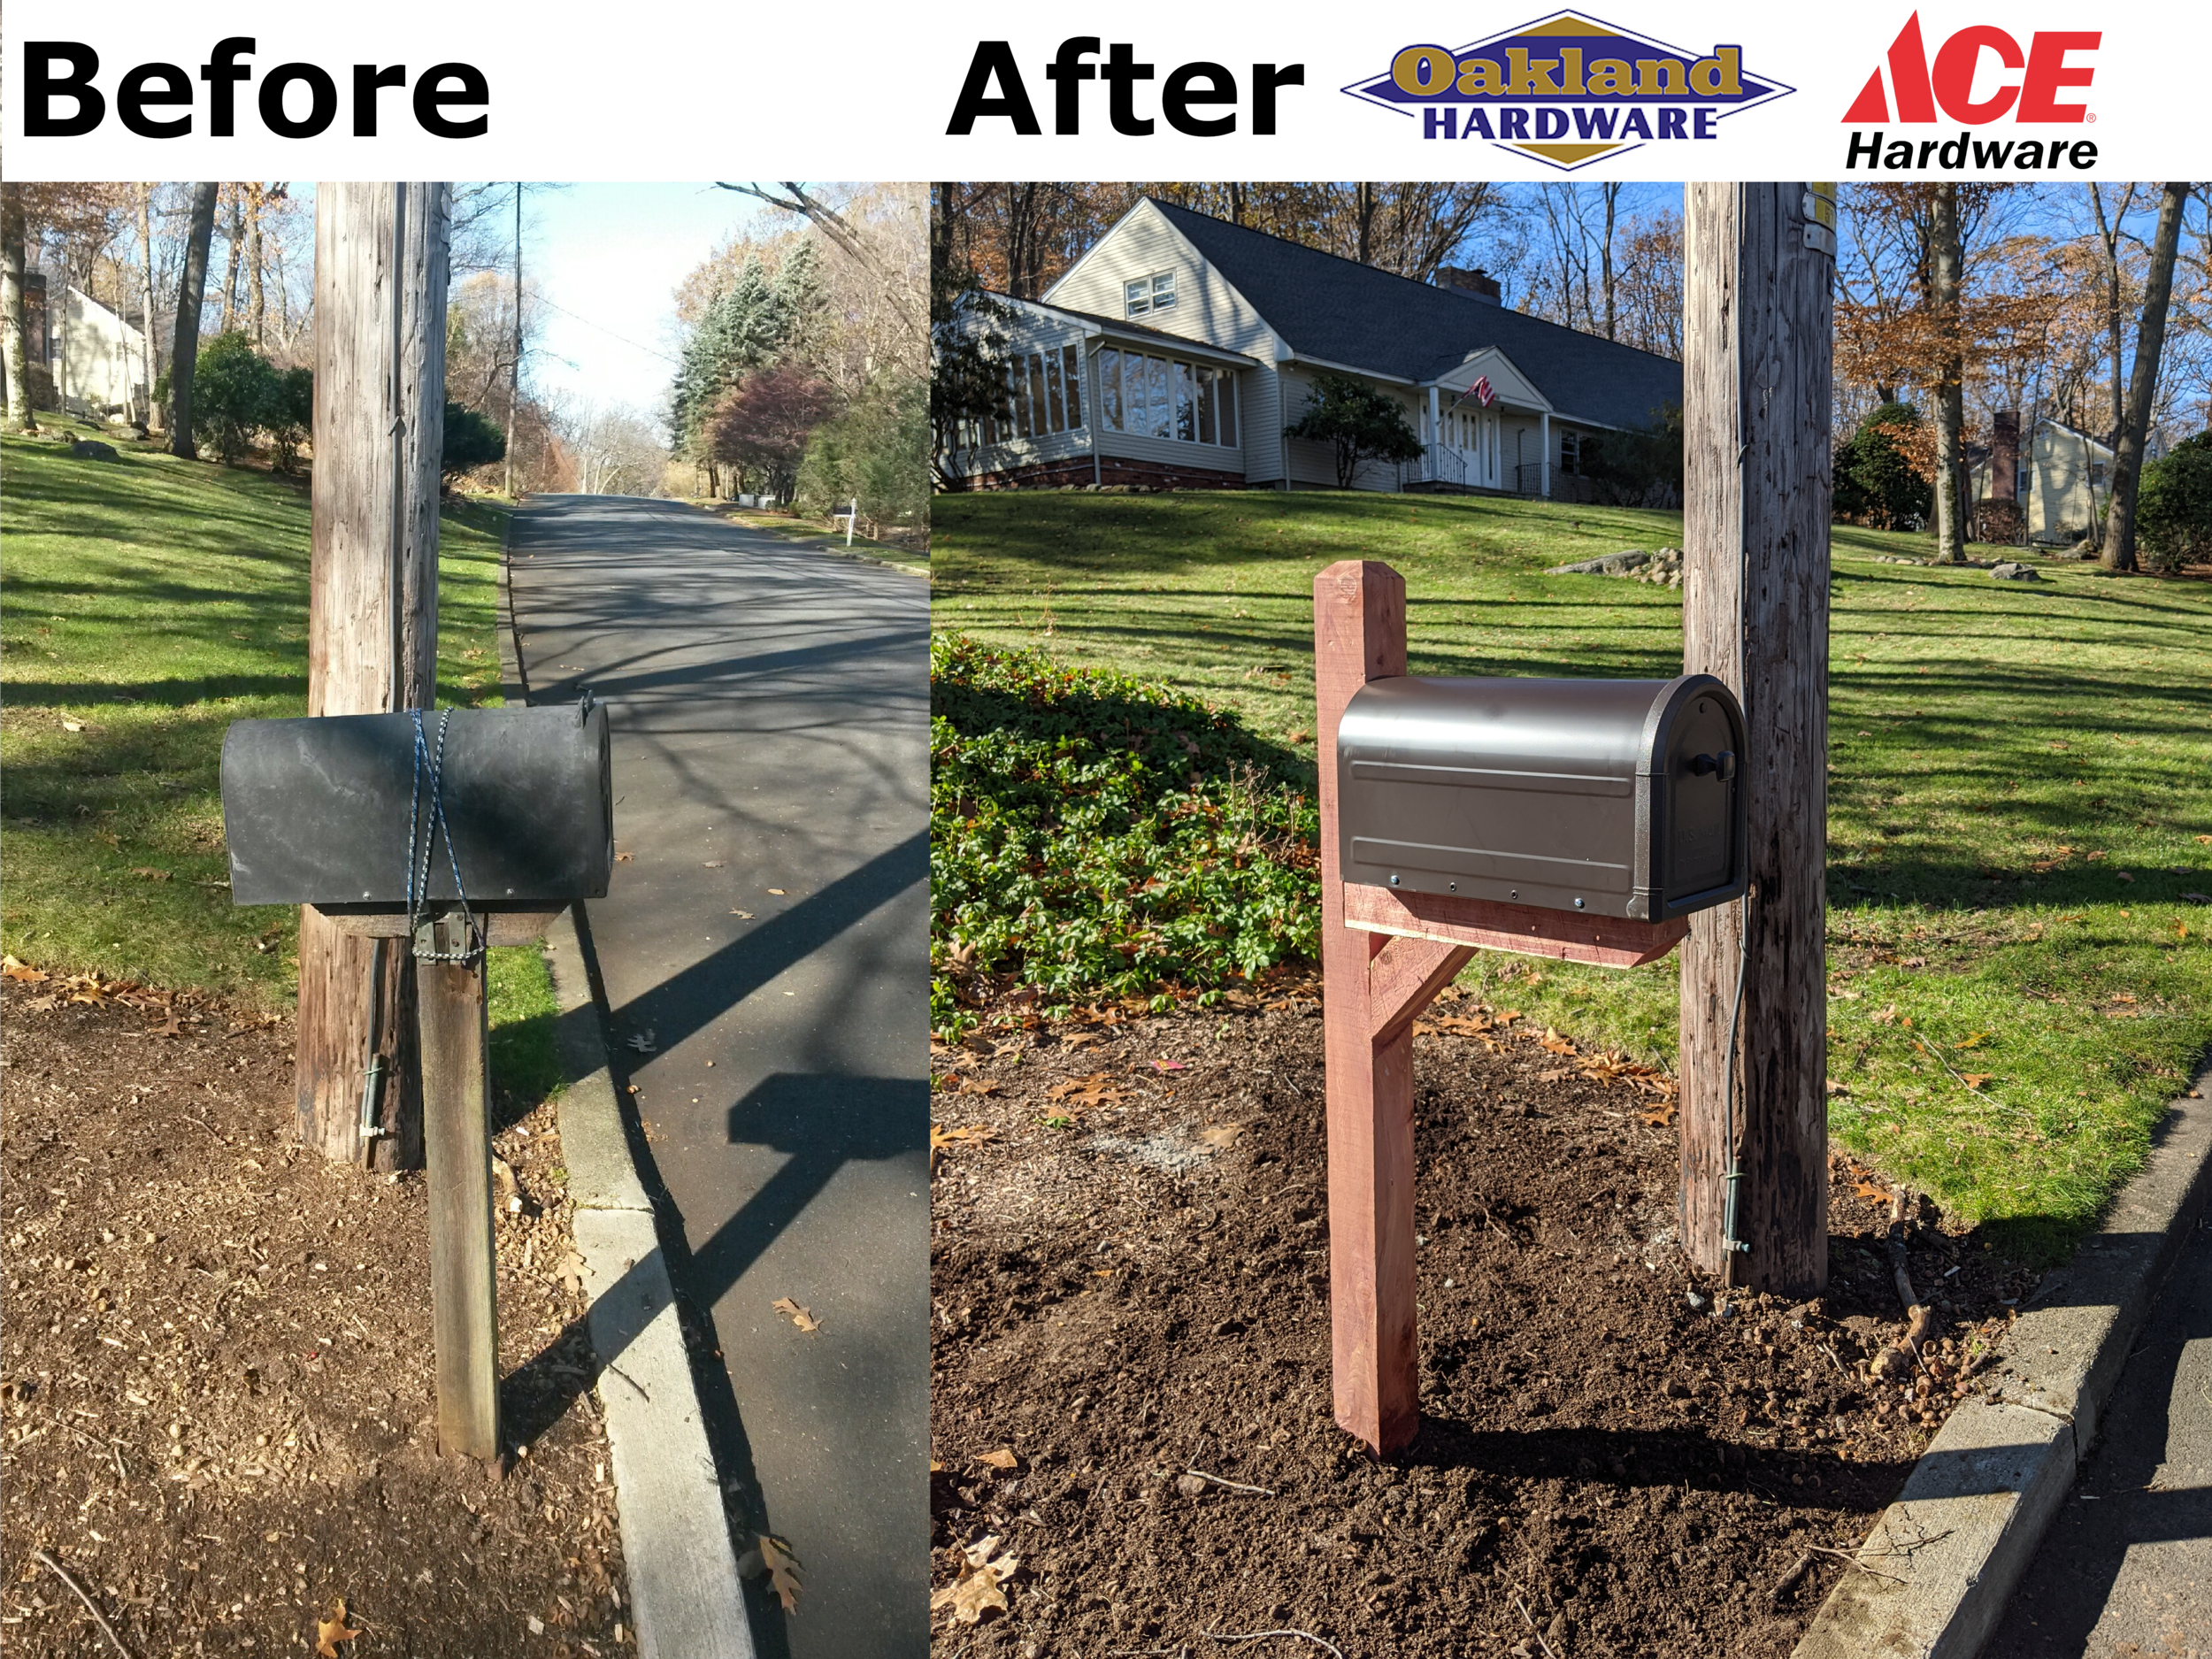 Before and After images of a dilapidated mailbox falling off it's post, and the new mailbox replaced with new post.